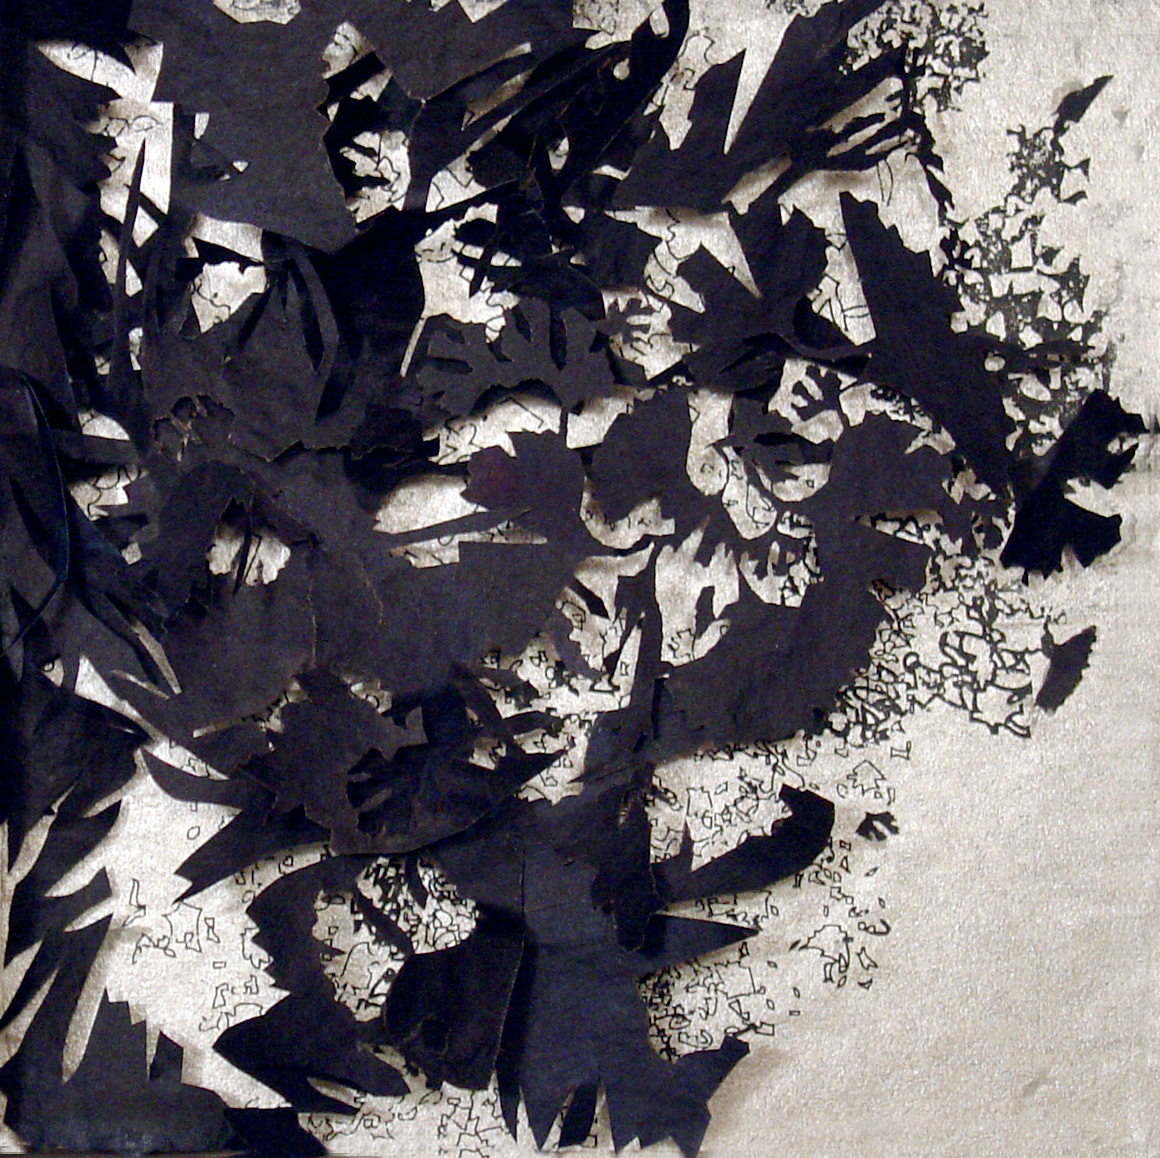 Indigo Paper Relief Sculptures